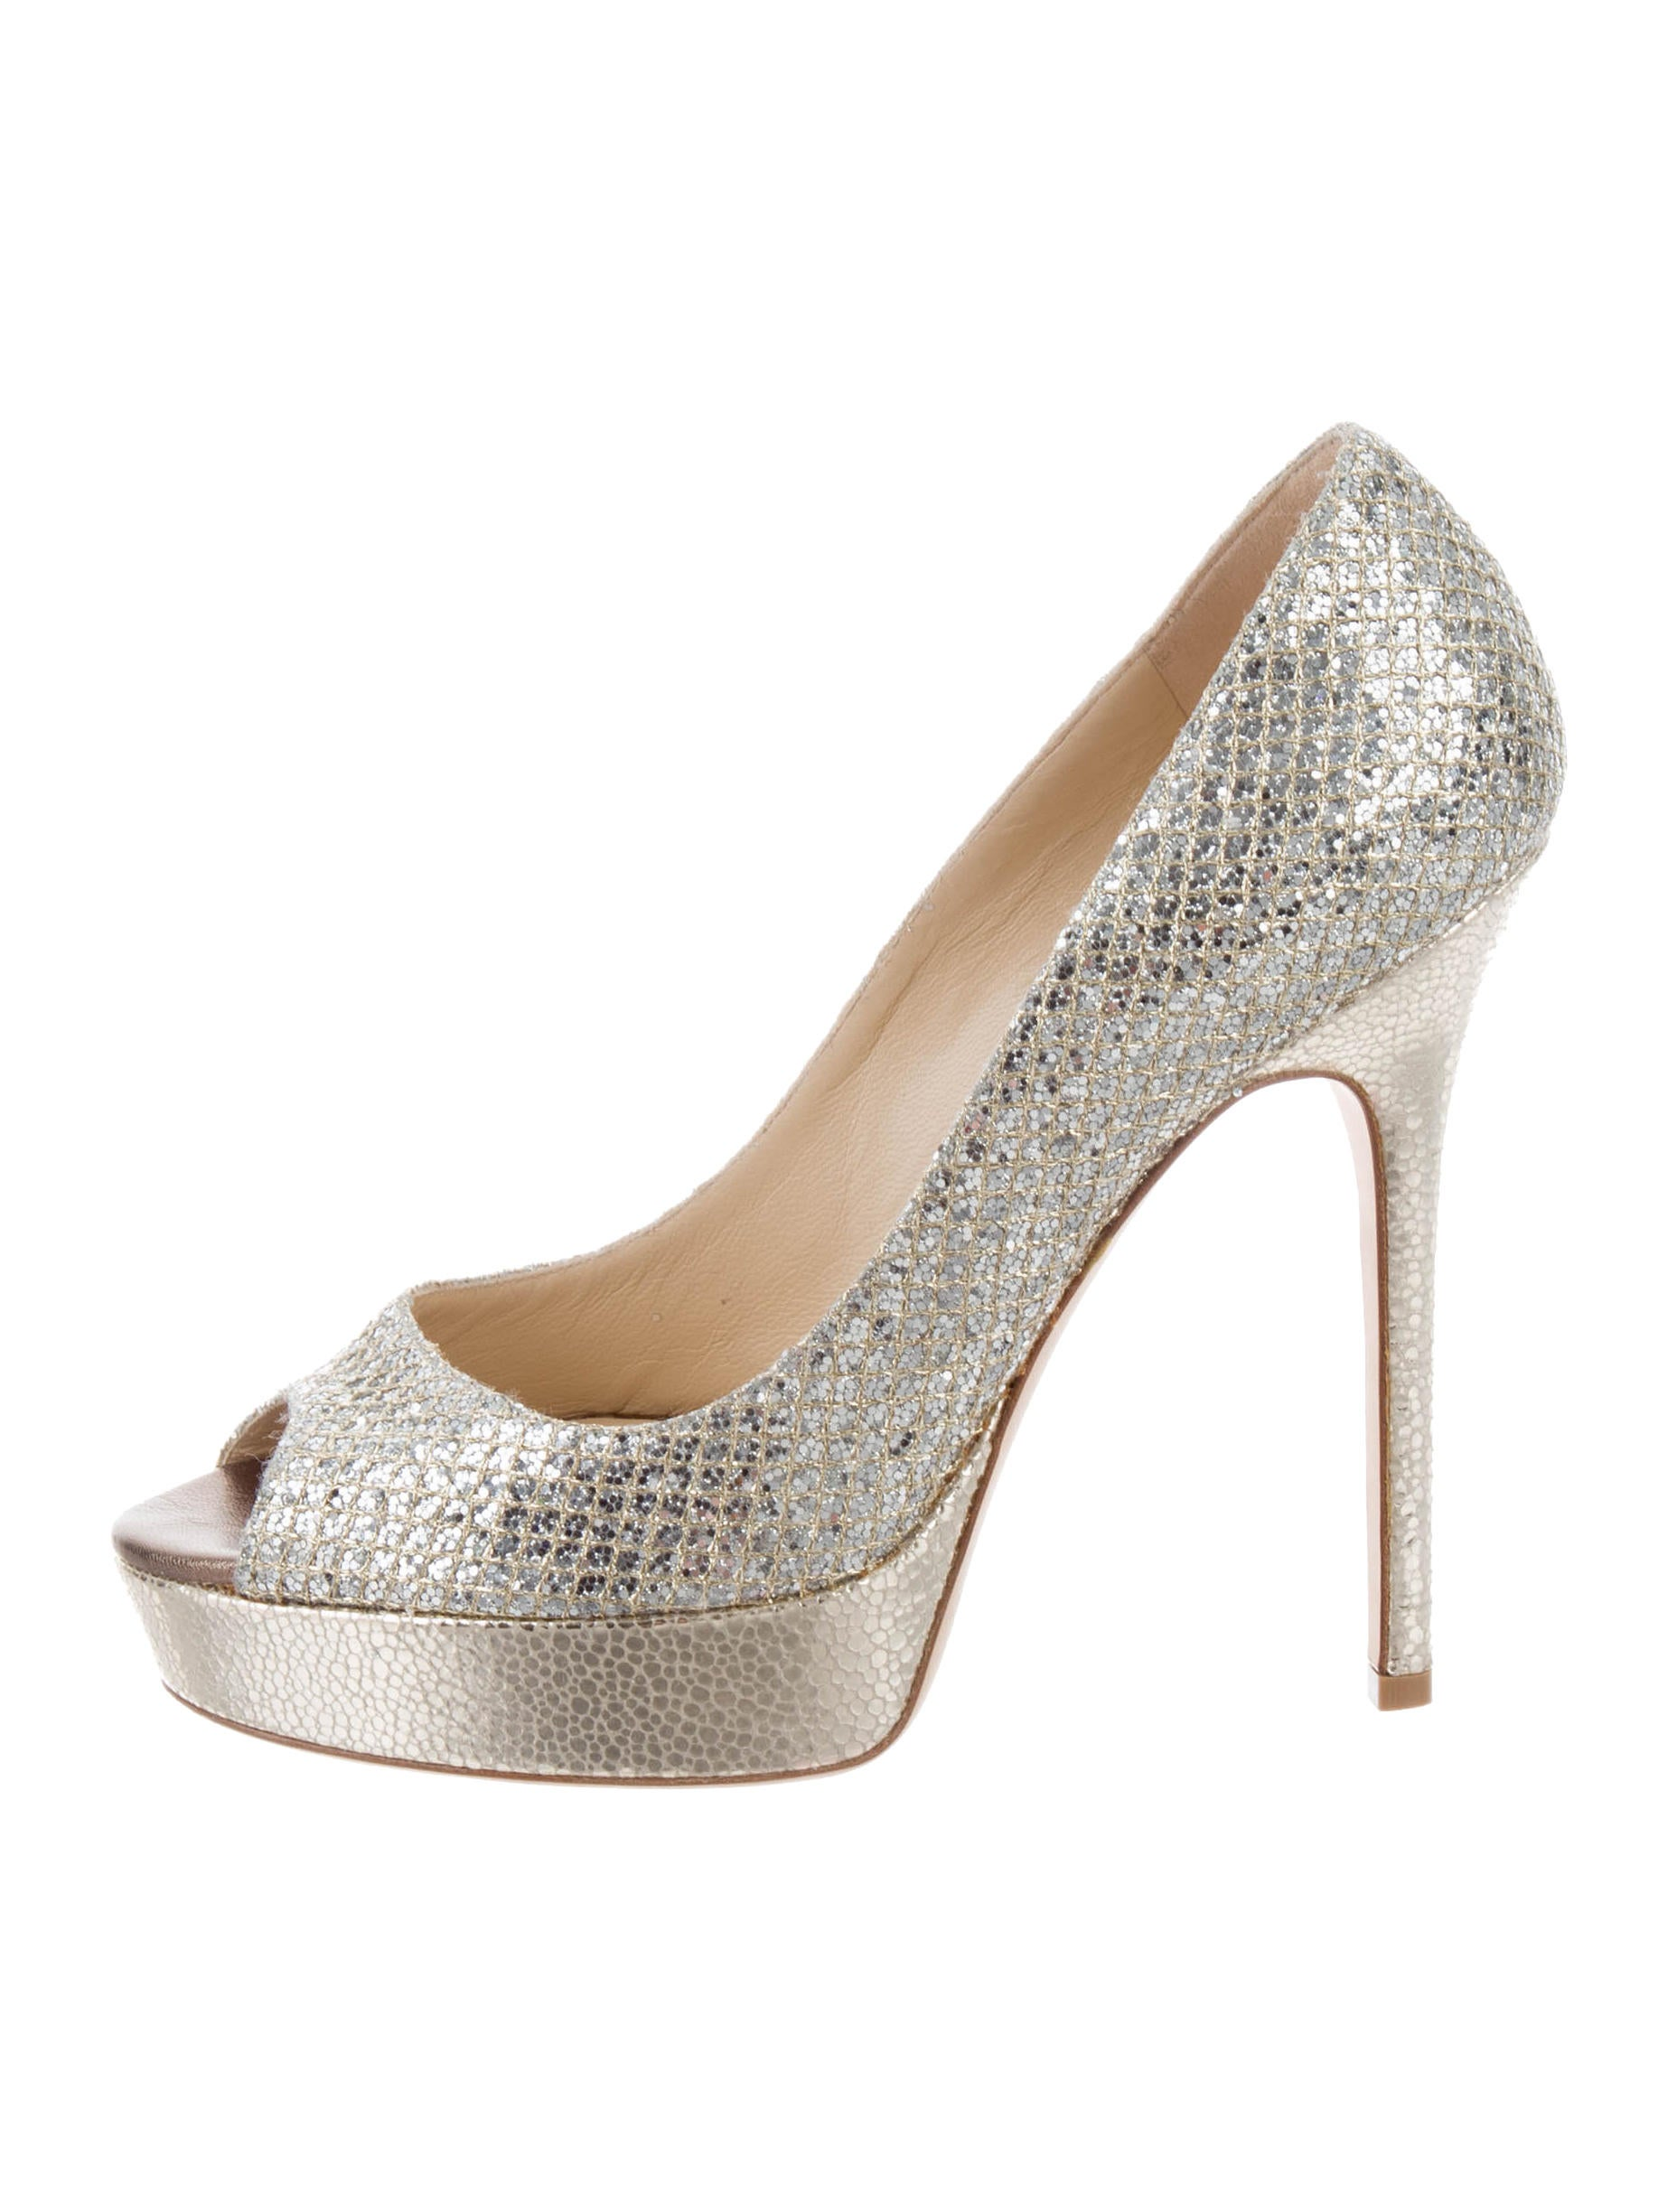 d3ec14c4f01e Jimmy Choo Glitter Crown Pumps w  Tags - Shoes - JIM82980